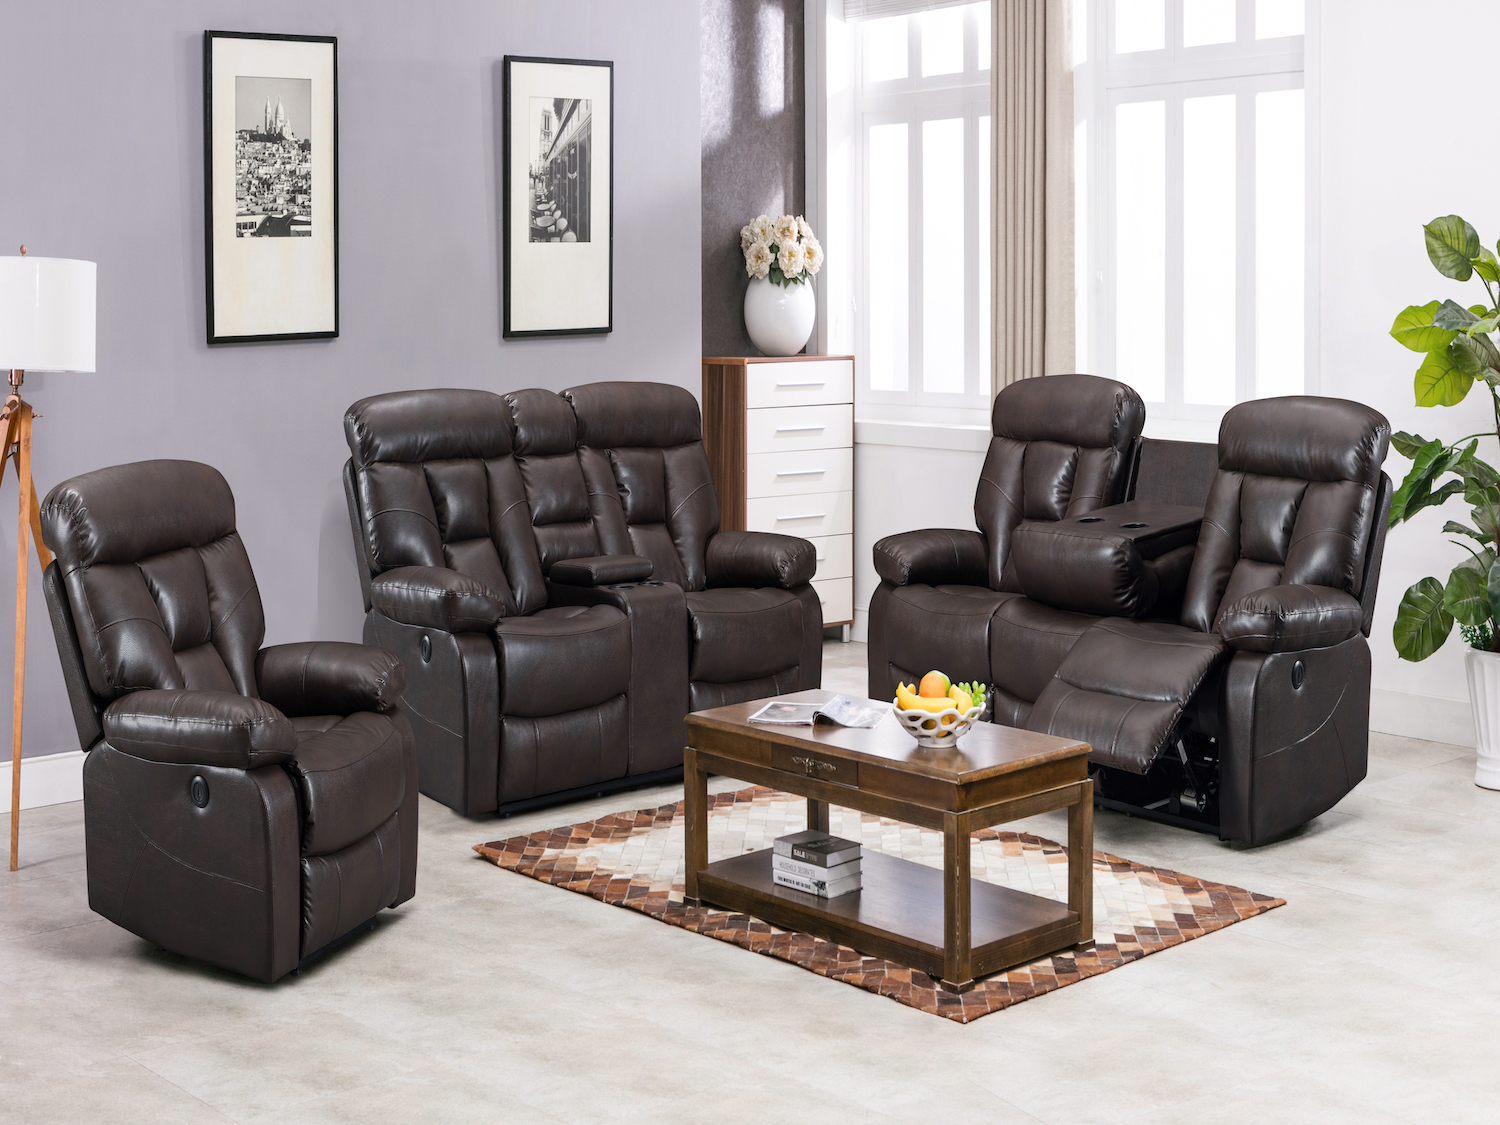 2 PC Power Recliner Sofa Set, 9912, Recliner Sofa Sets by Midha Furniture to Brampton, Mississauga, Etobicoke, Toronto, Scraborough, Caledon, Oakville, Markham, Ajax, Pickering, Oshawa, Richmondhill, Kitchener, Hamilton, Cambridge, Waterloo and GTA area